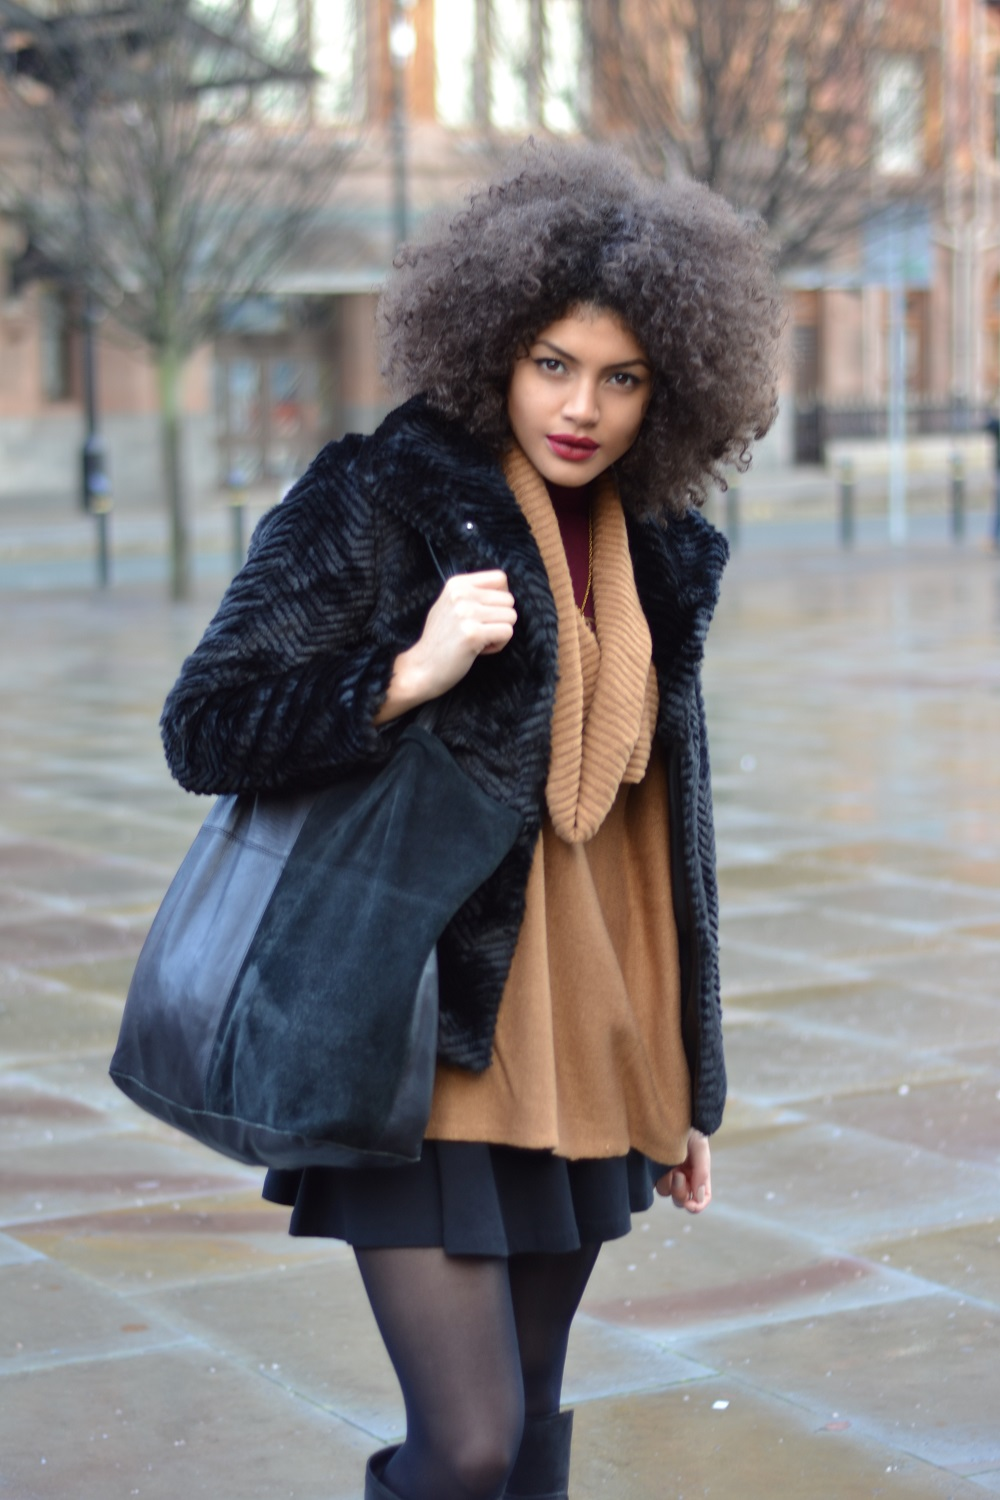 H&M Fake fur jacket and H&M Knitted poncho